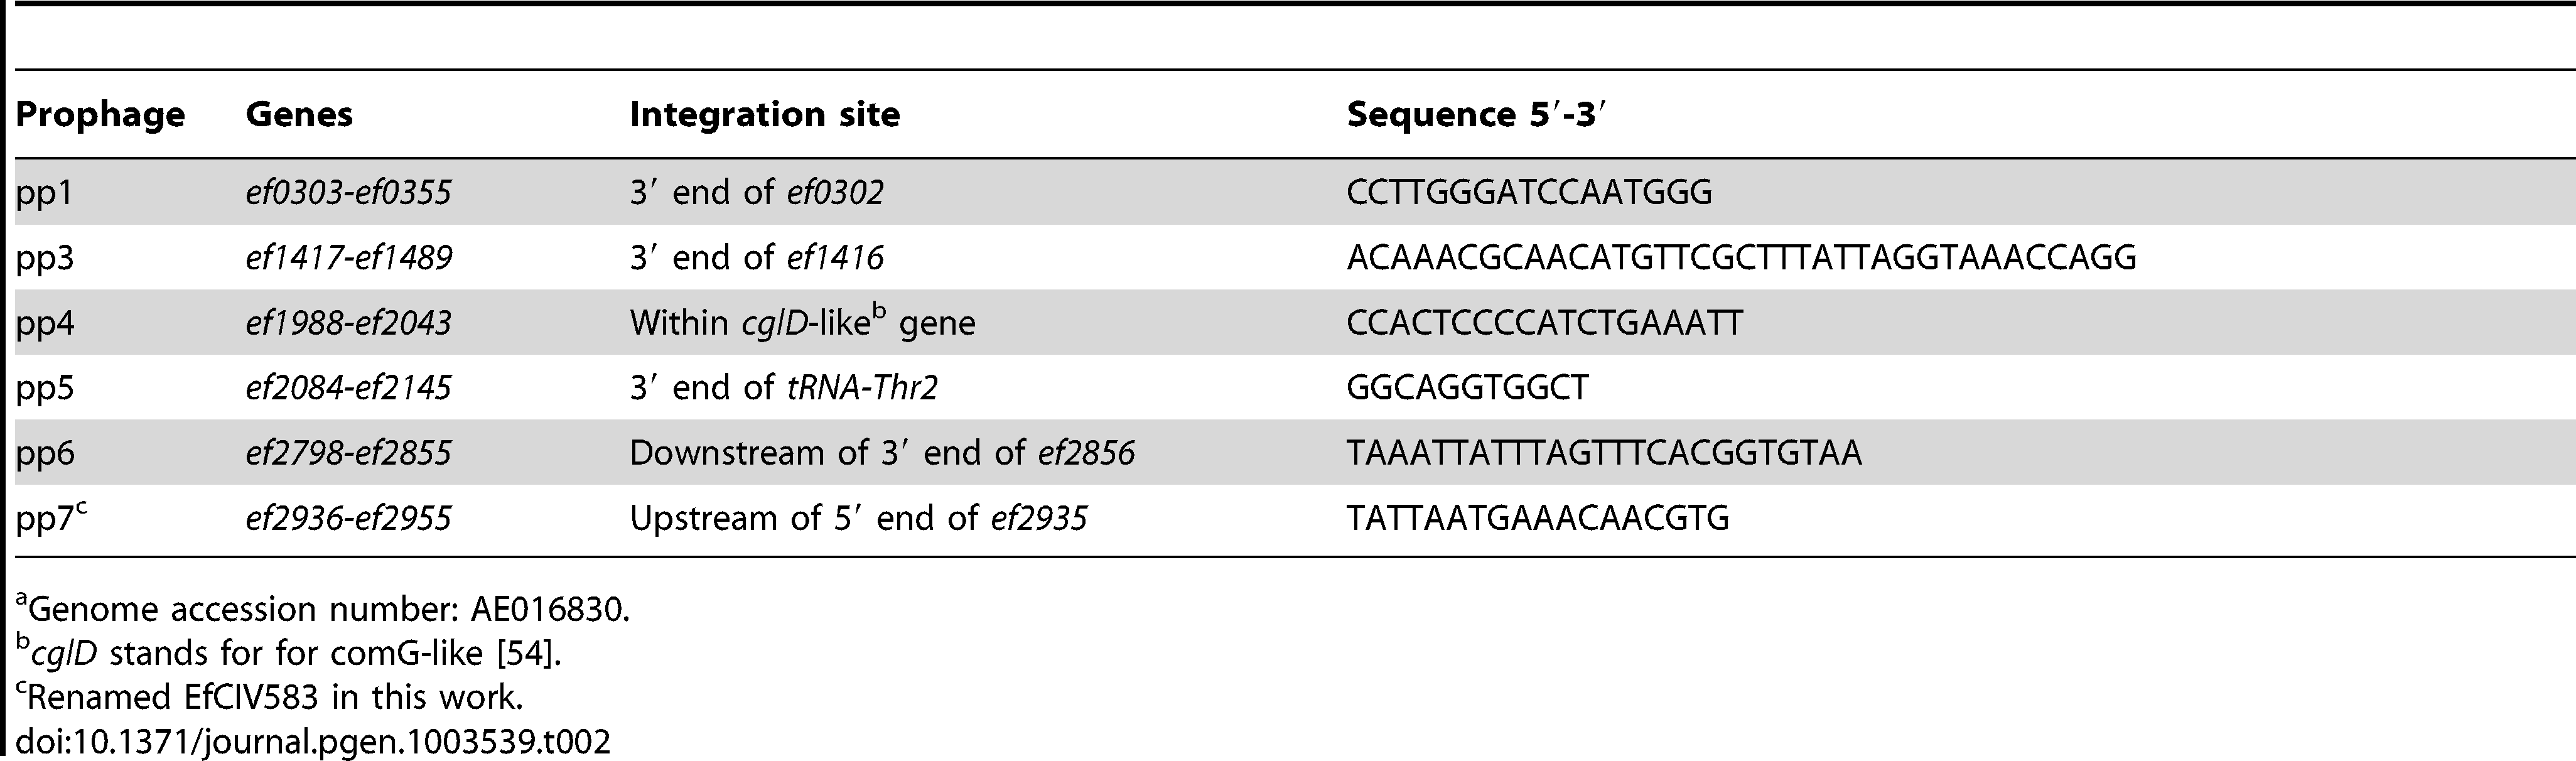 """Prophage <i>att</i> core sequence predicted and confirmed experimentally from V583 genome<em class=""""ref"""">a</em>."""